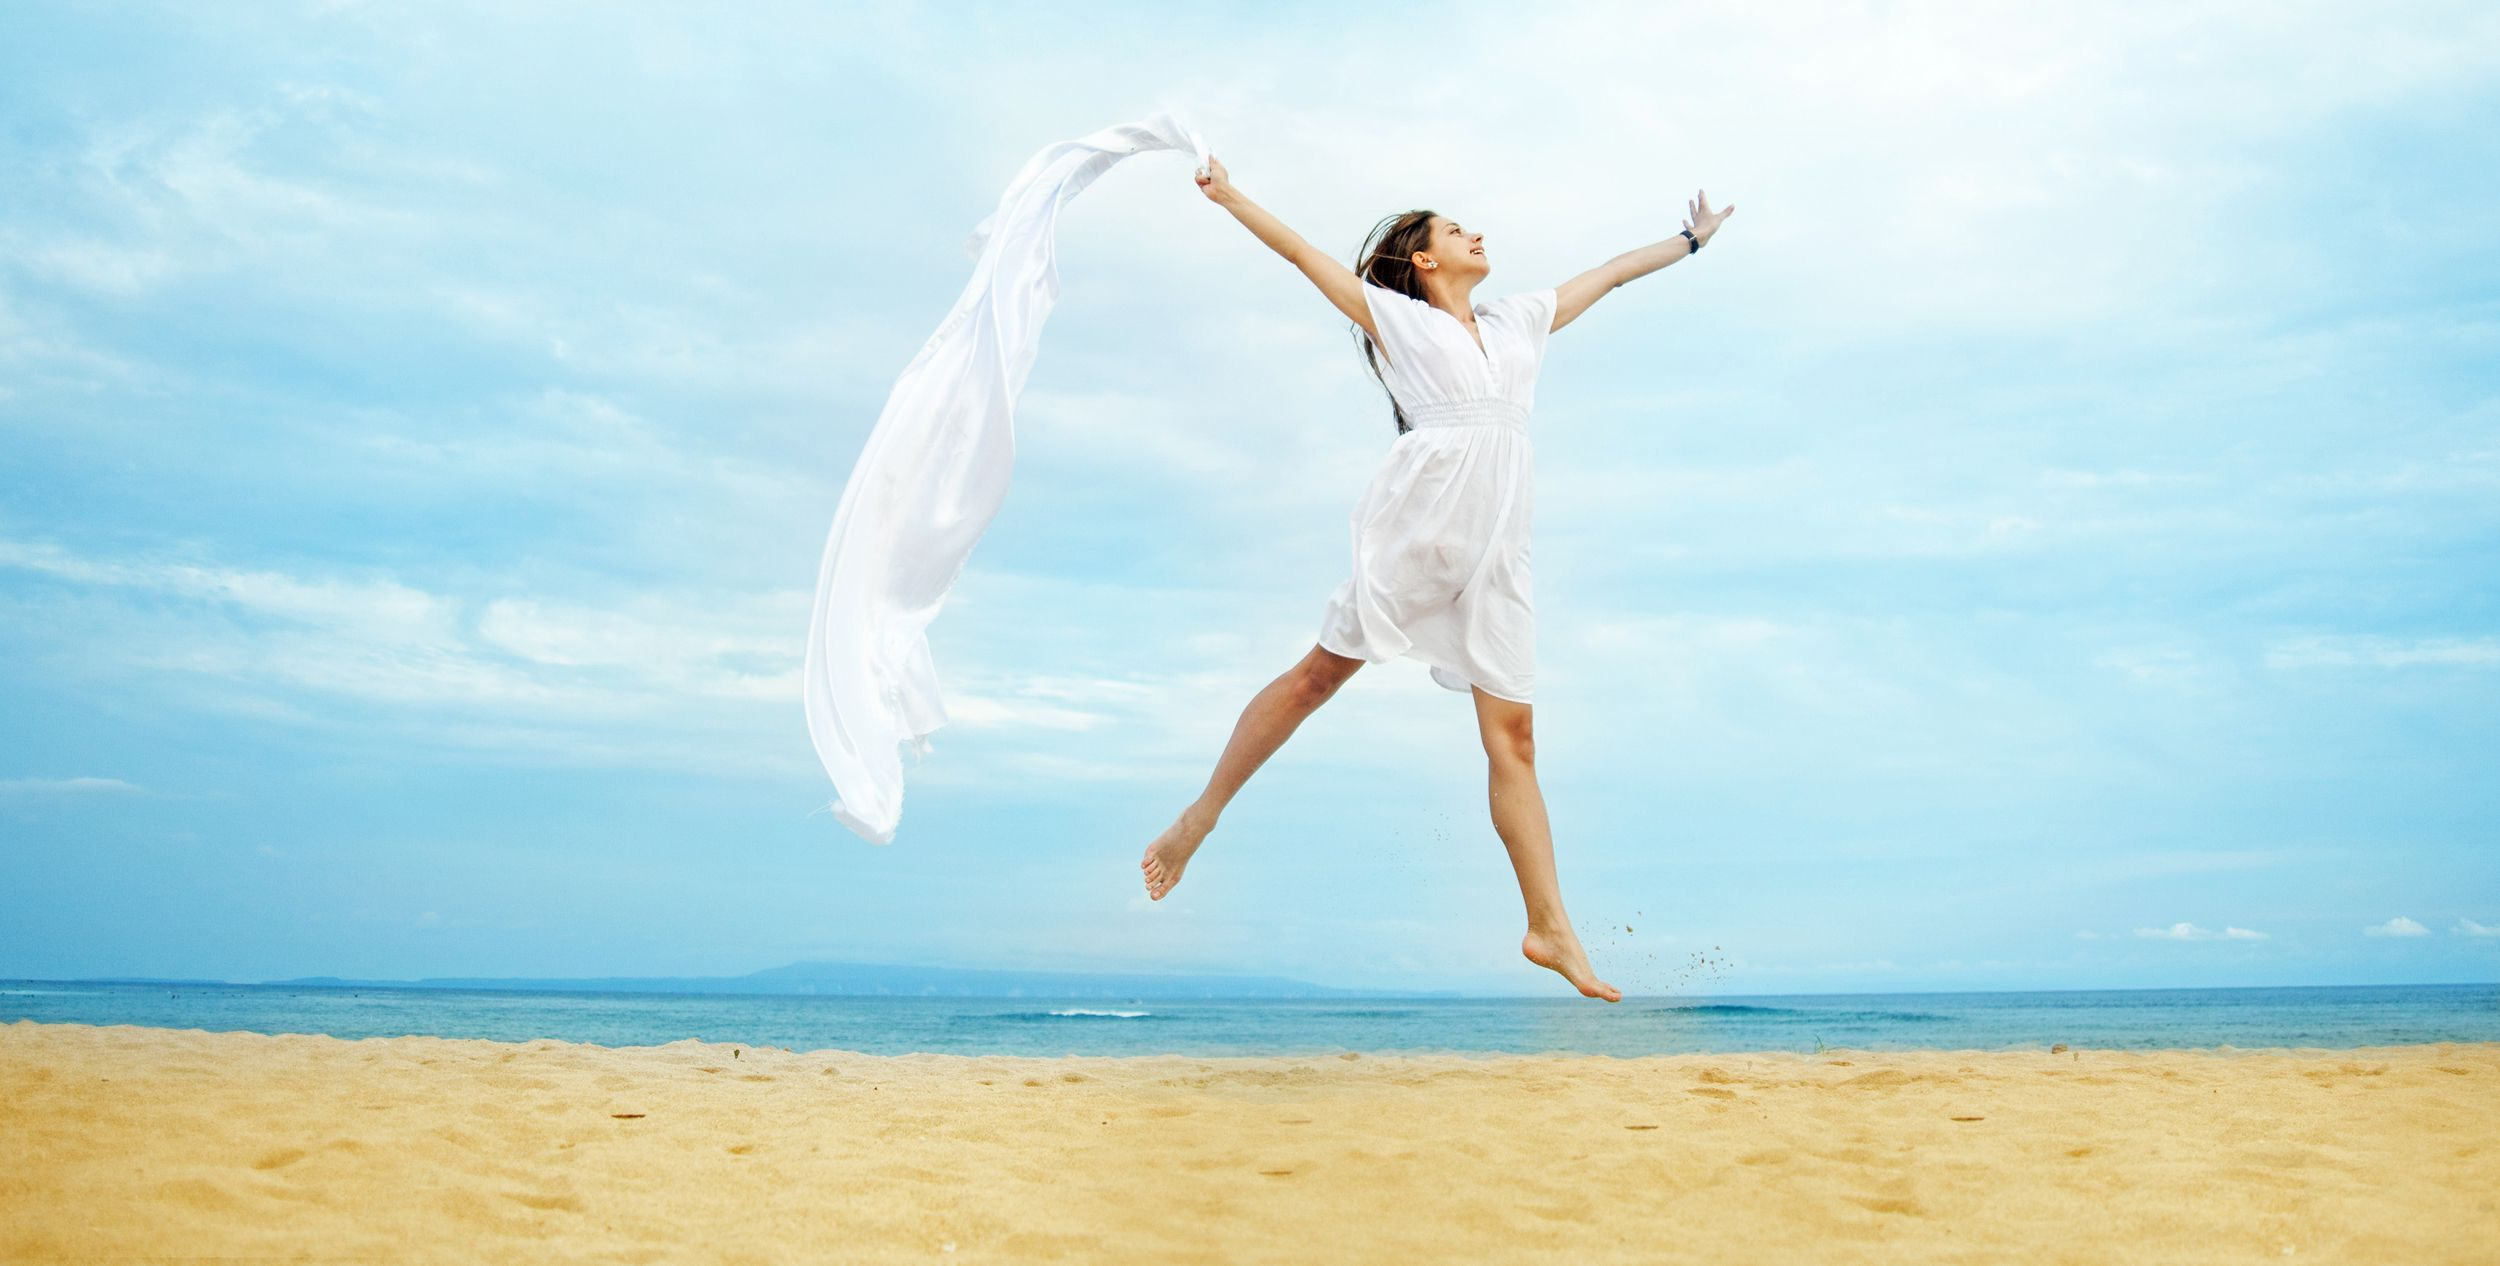 Happy Free Woman on Beach